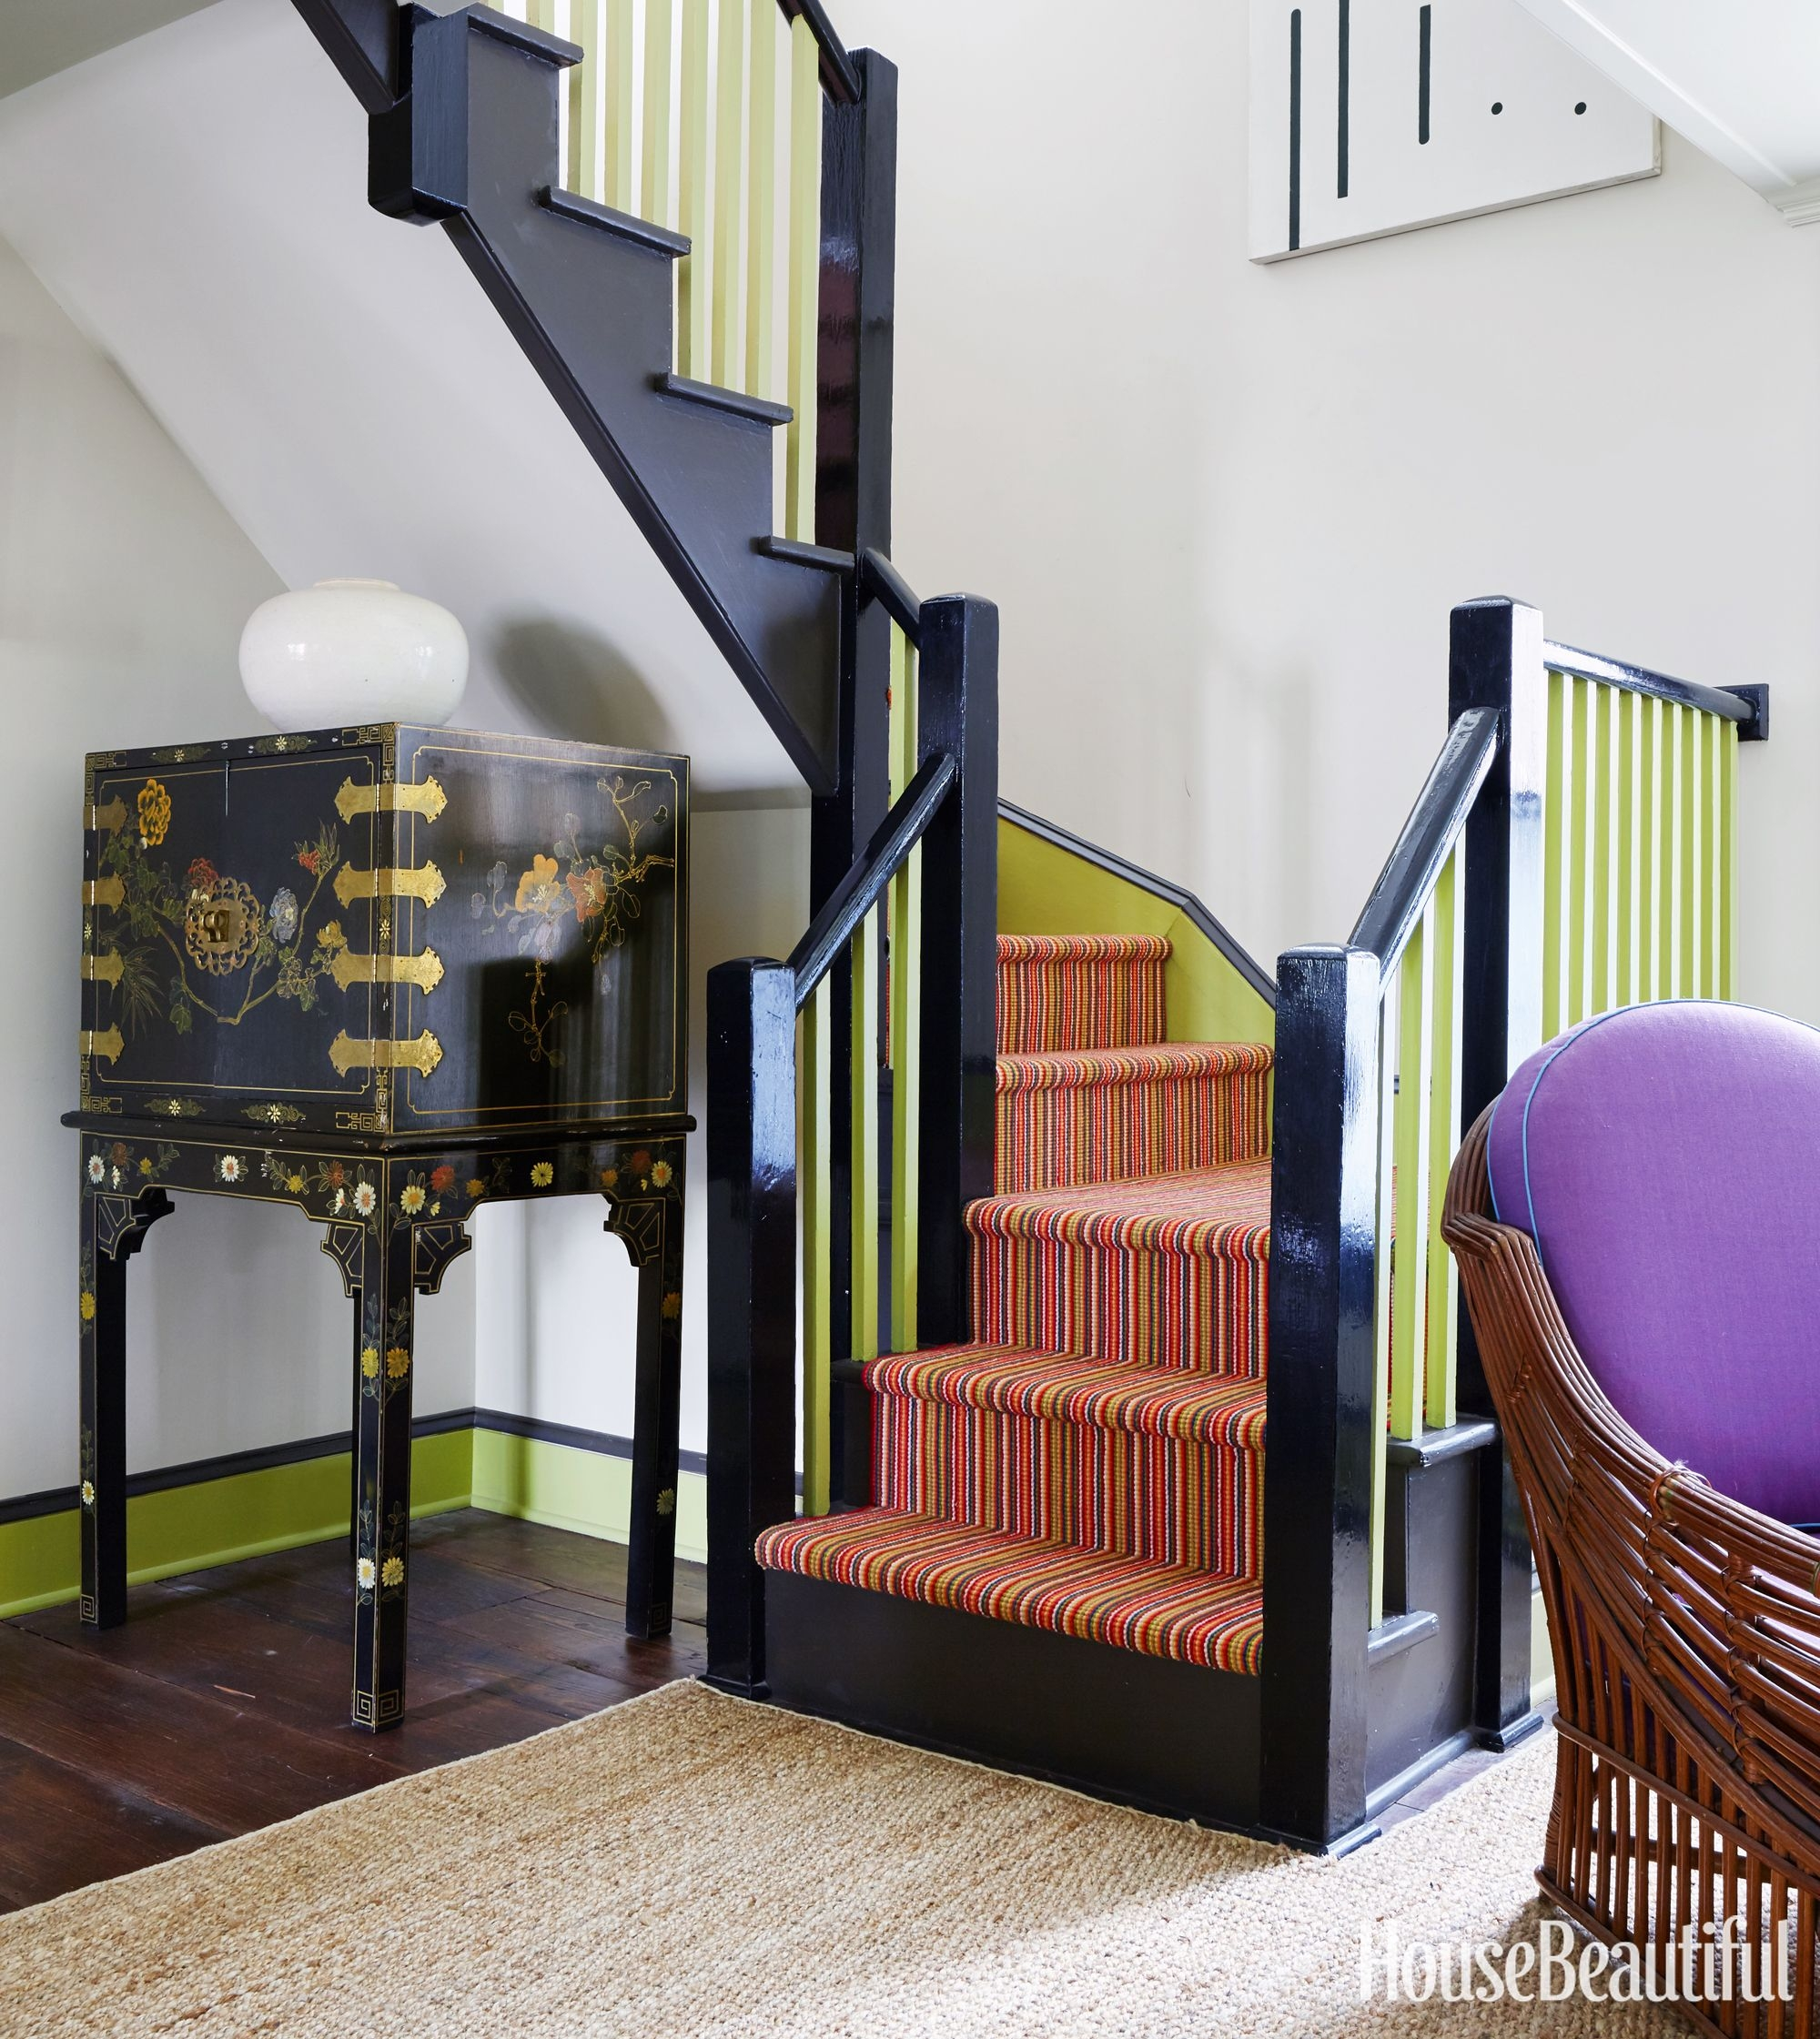 25 Unique Stair Designs Beautiful Stair Ideas For Your House | Interior Steps Design For Hall | Modern Drawing Room Tv Cabinet | Decorative | Architecture | Half Circle Staircase | Model House Hall